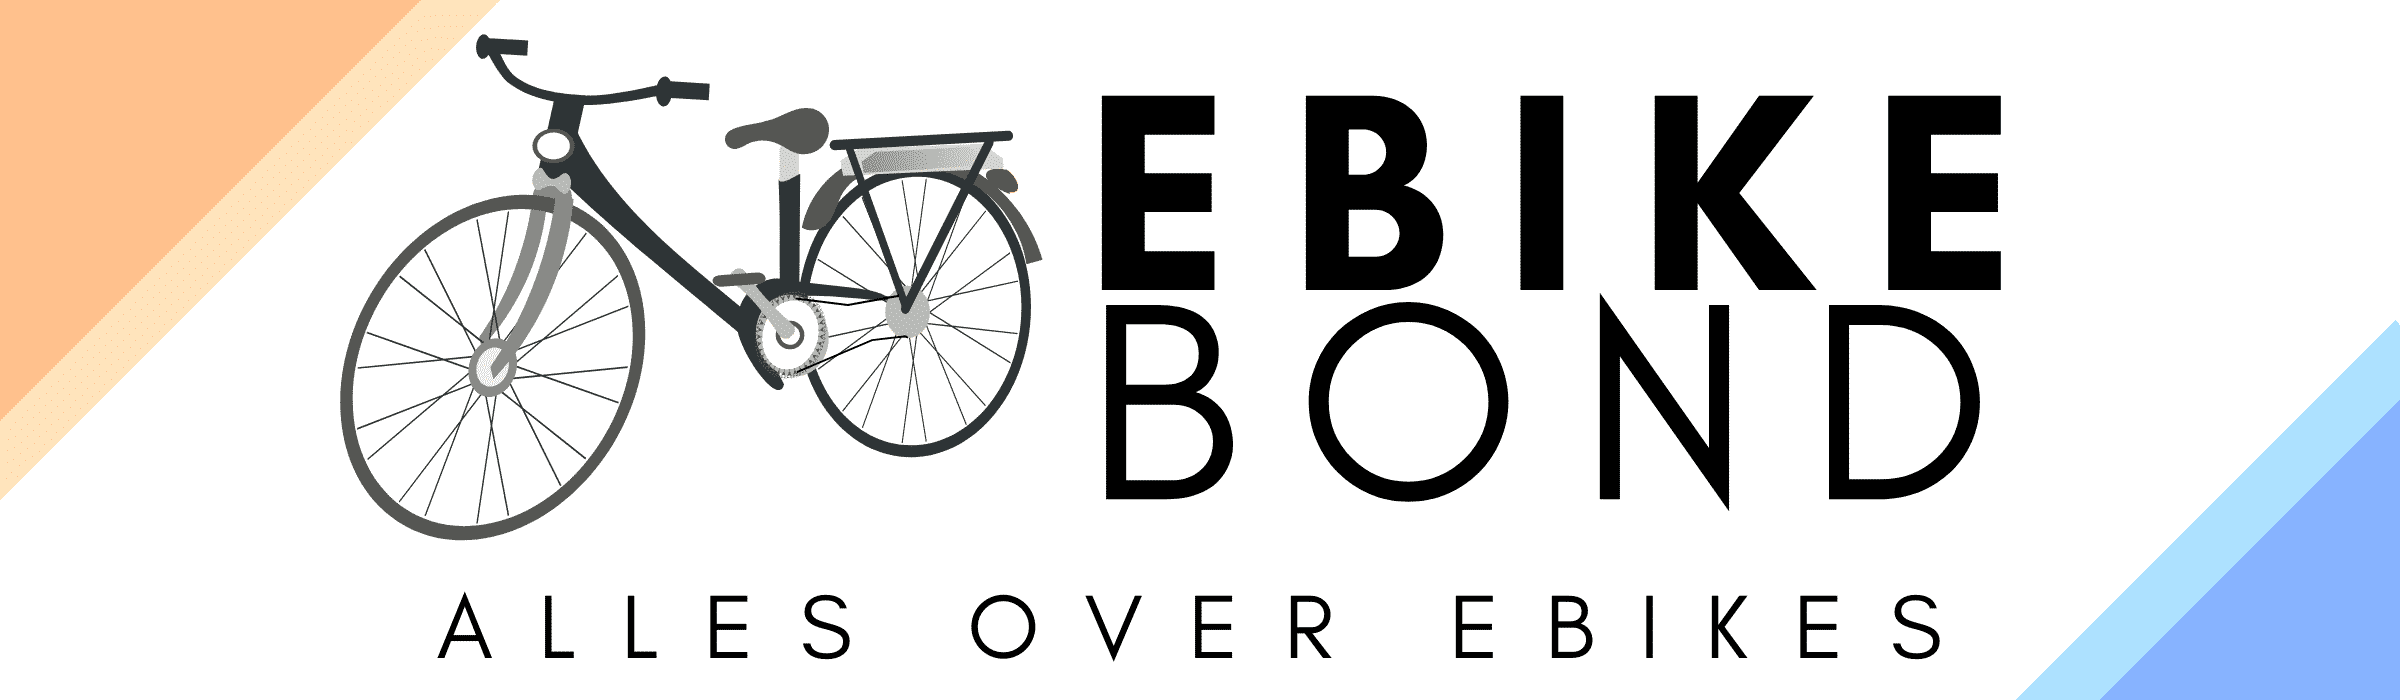 E-Bike bond header